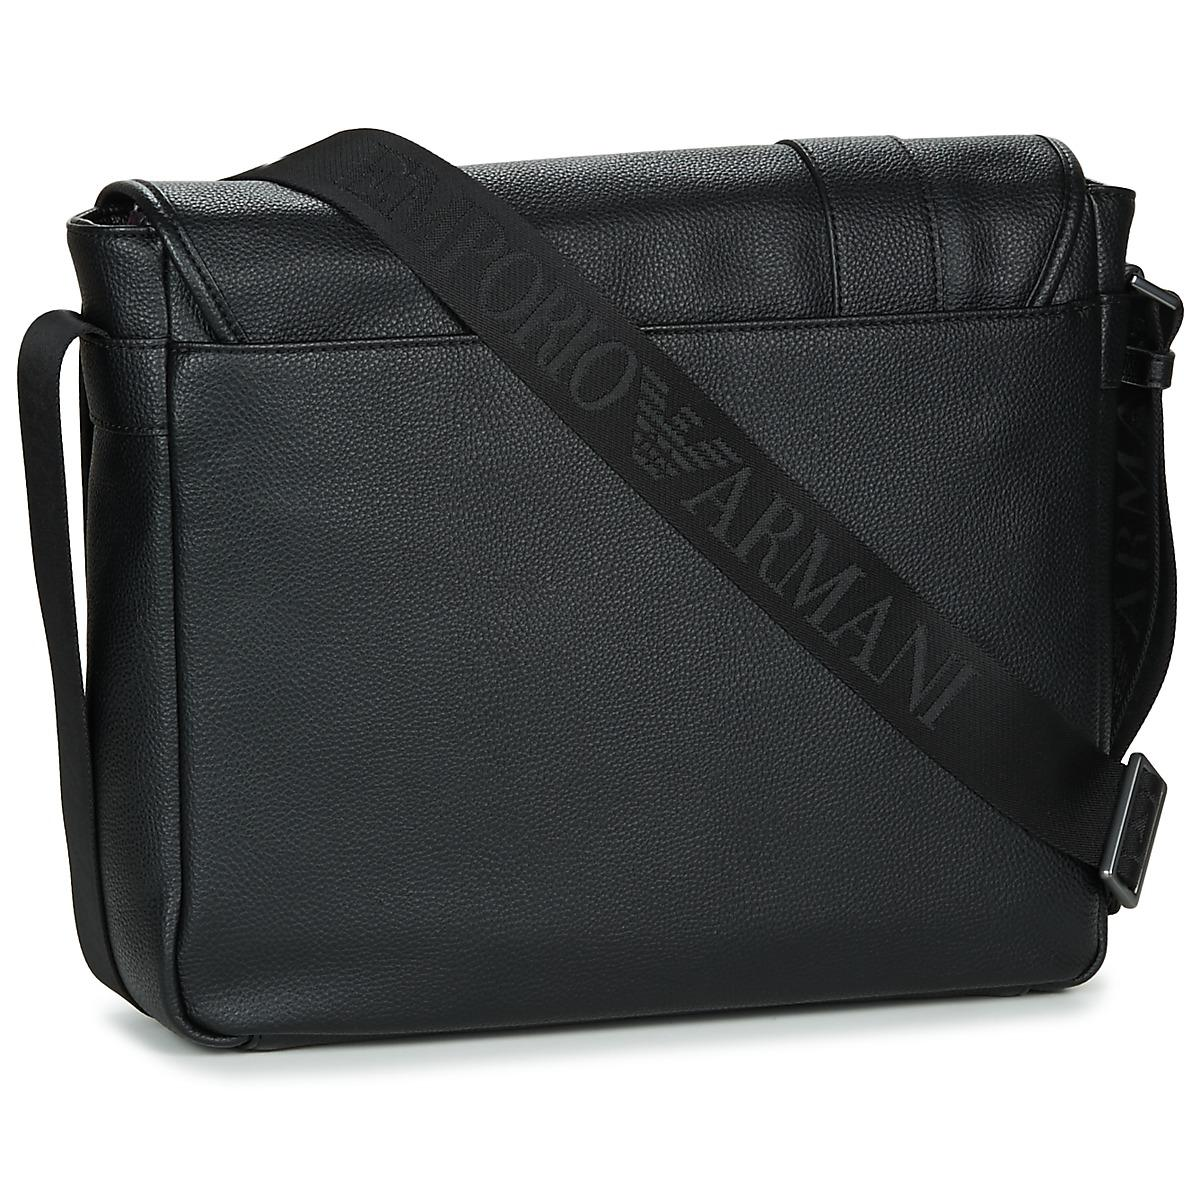 4339622c523d Emporio Armani - Black Webbing Flat Messenger Bag Messenger Bag for Men -  Lyst. View fullscreen